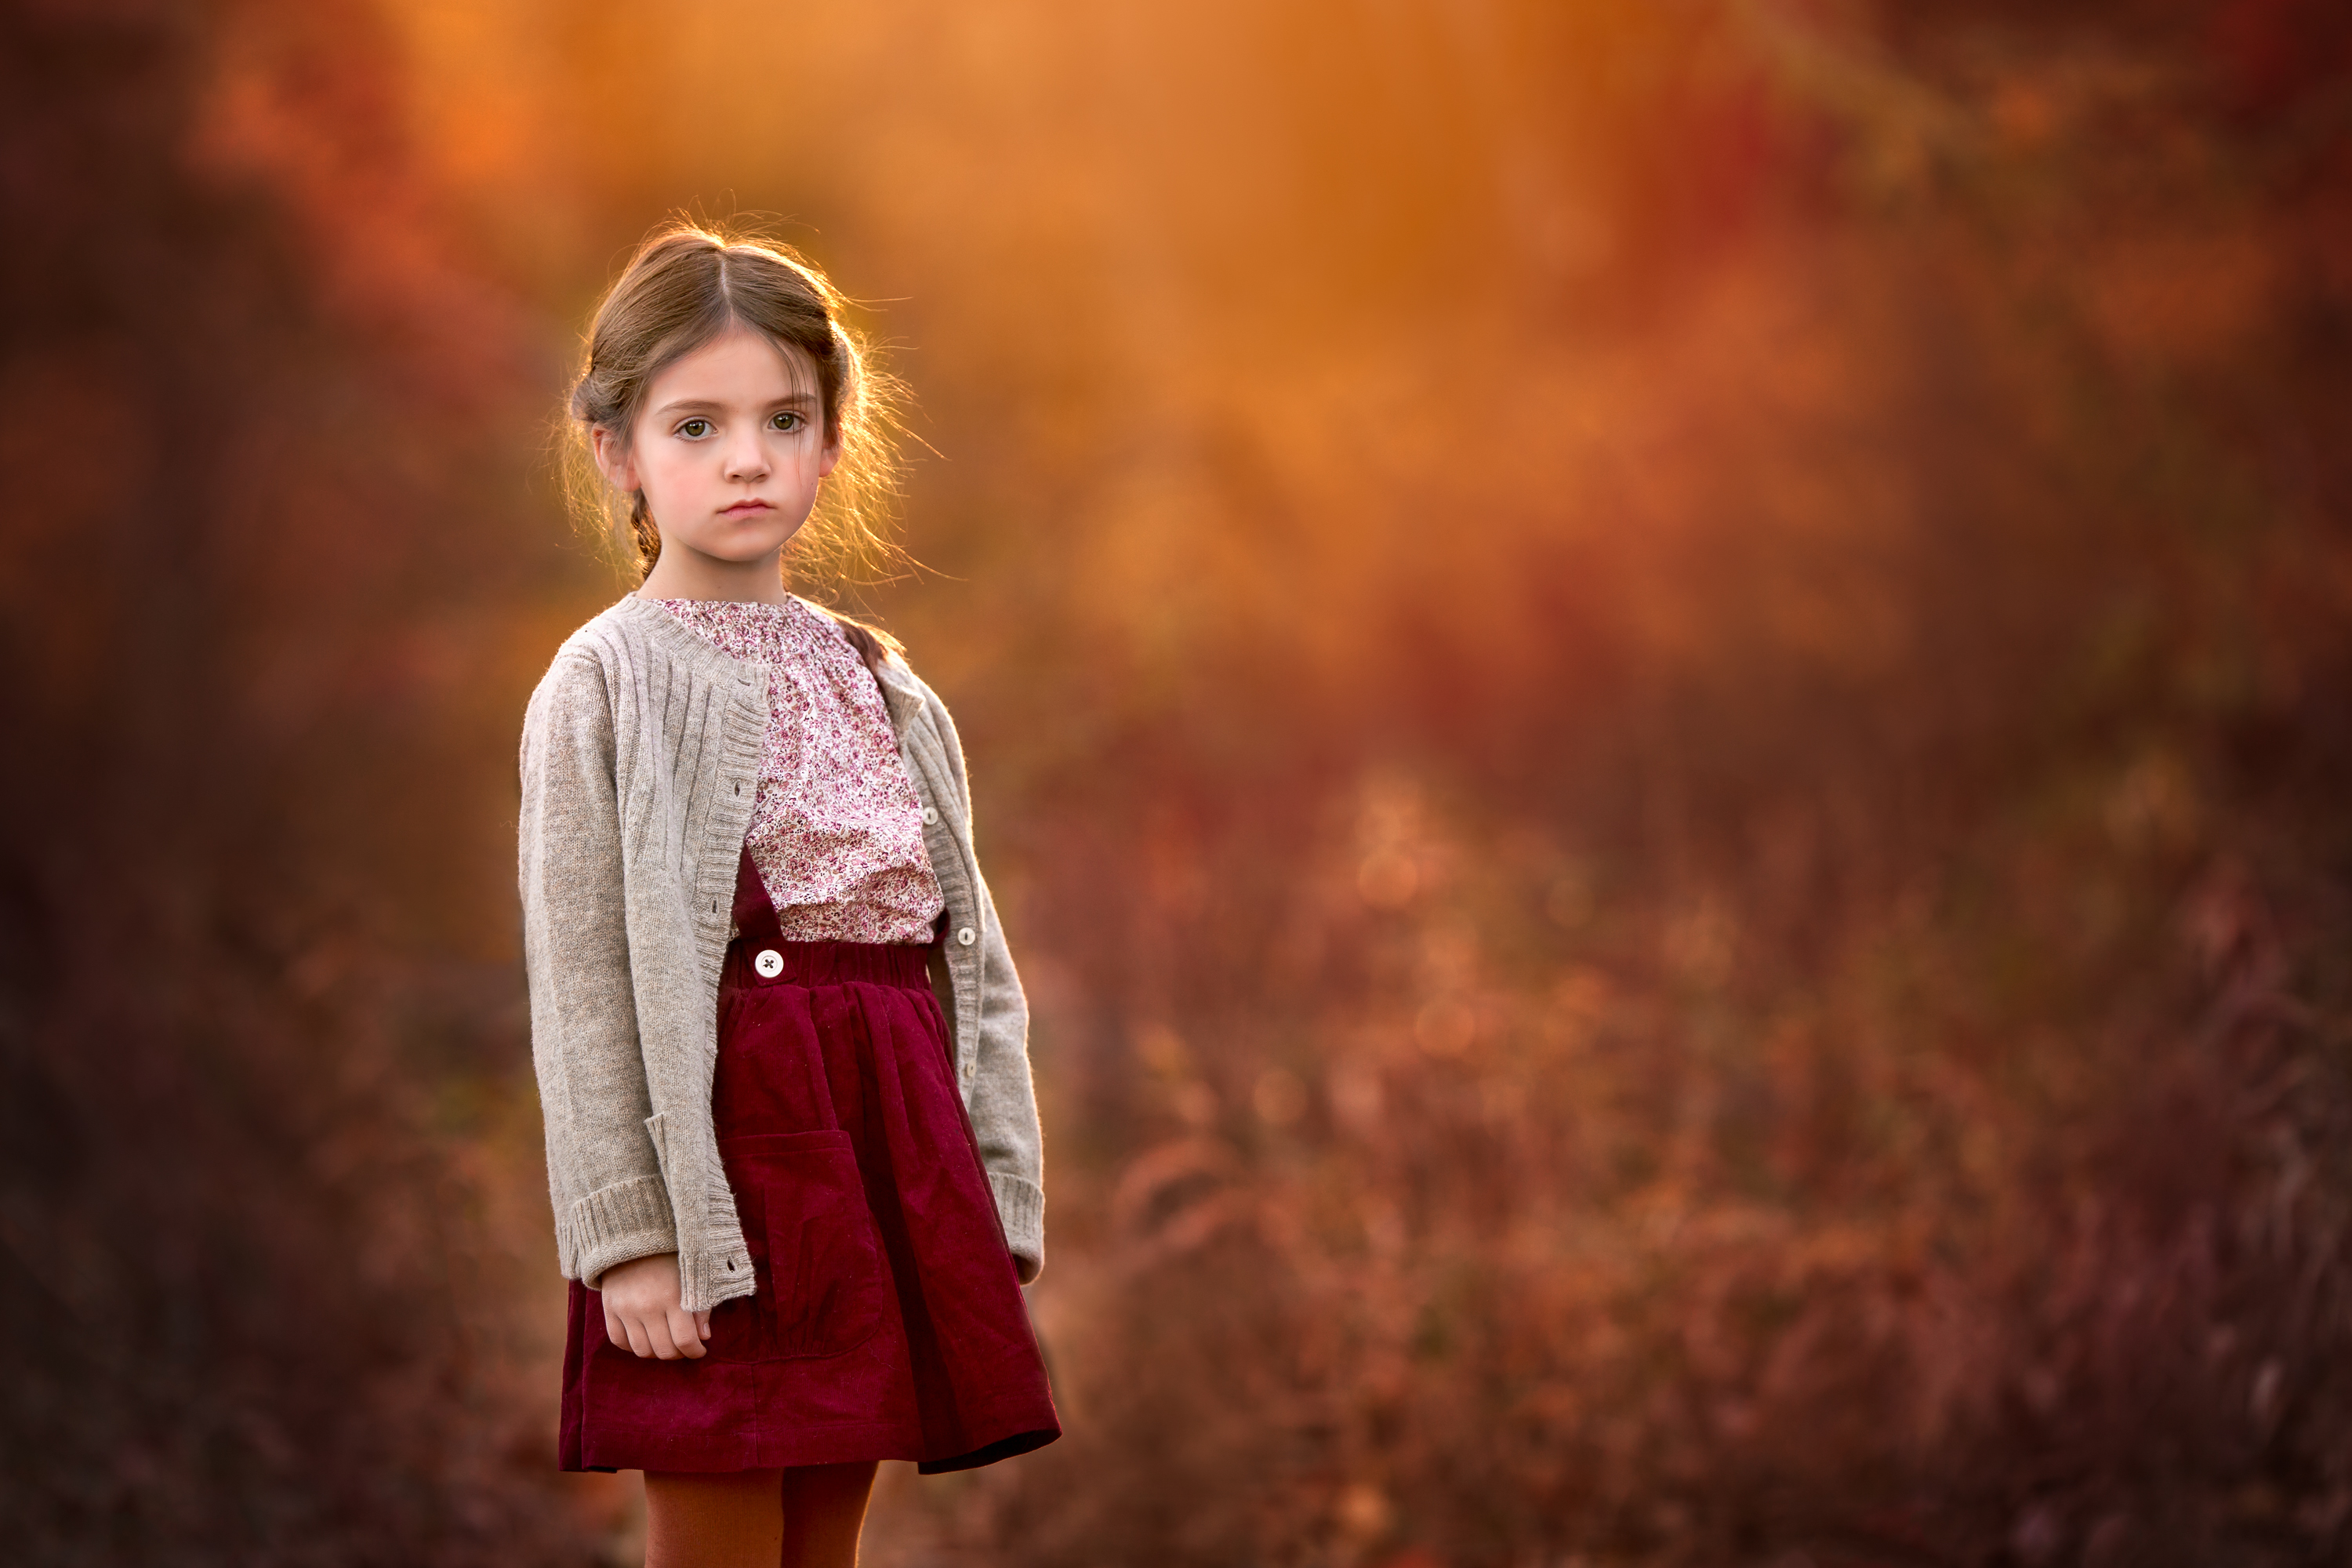 Child, Everyday, Fine Art, Portrait by Clare Ahalt with Canon EF 200mm f/2L IS USM